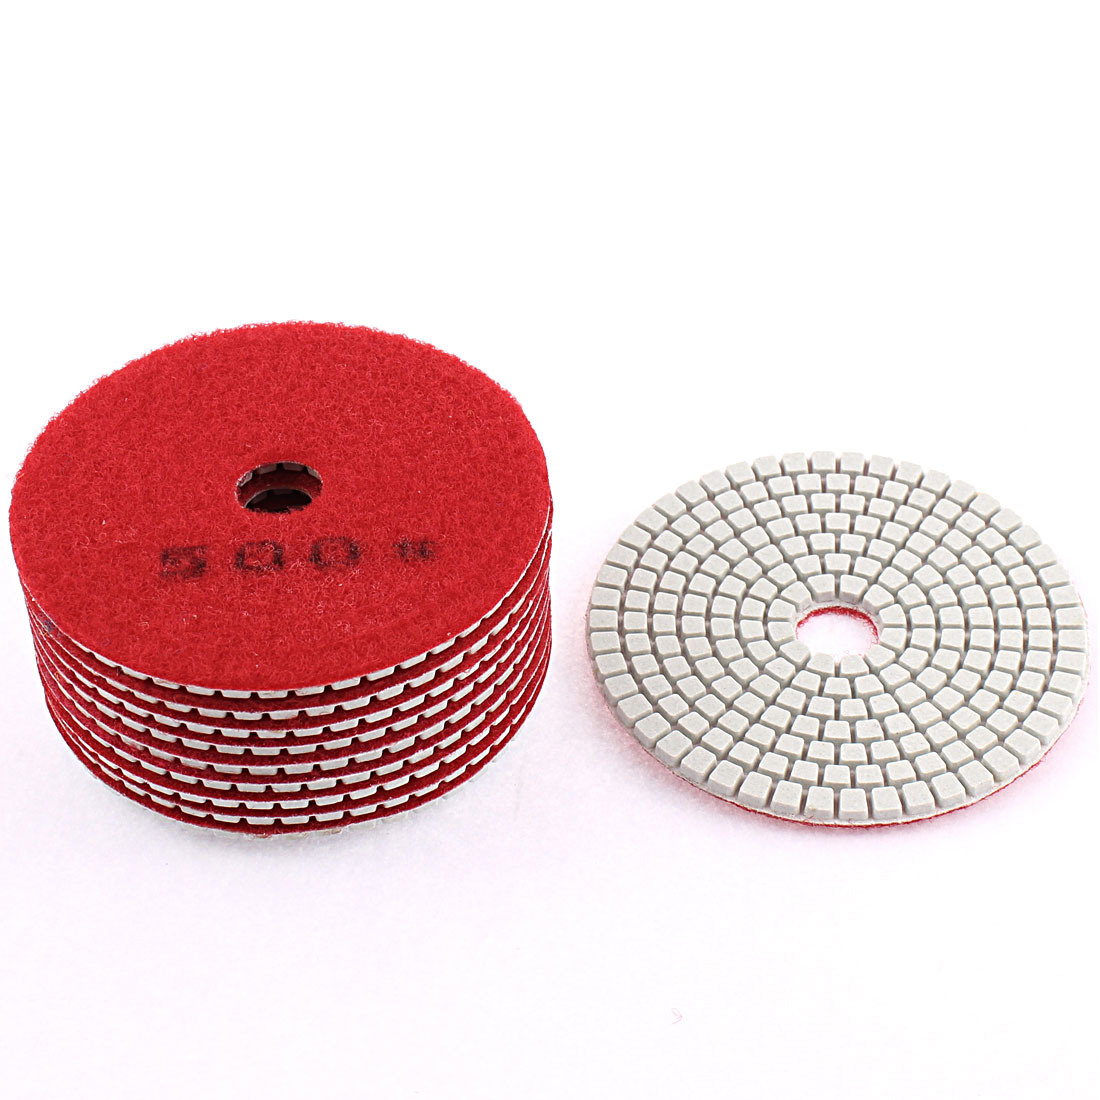 Diamond Polishing Pads for Granite Marble Concrete 500 Grit 100mm Diameter 10 Pcs